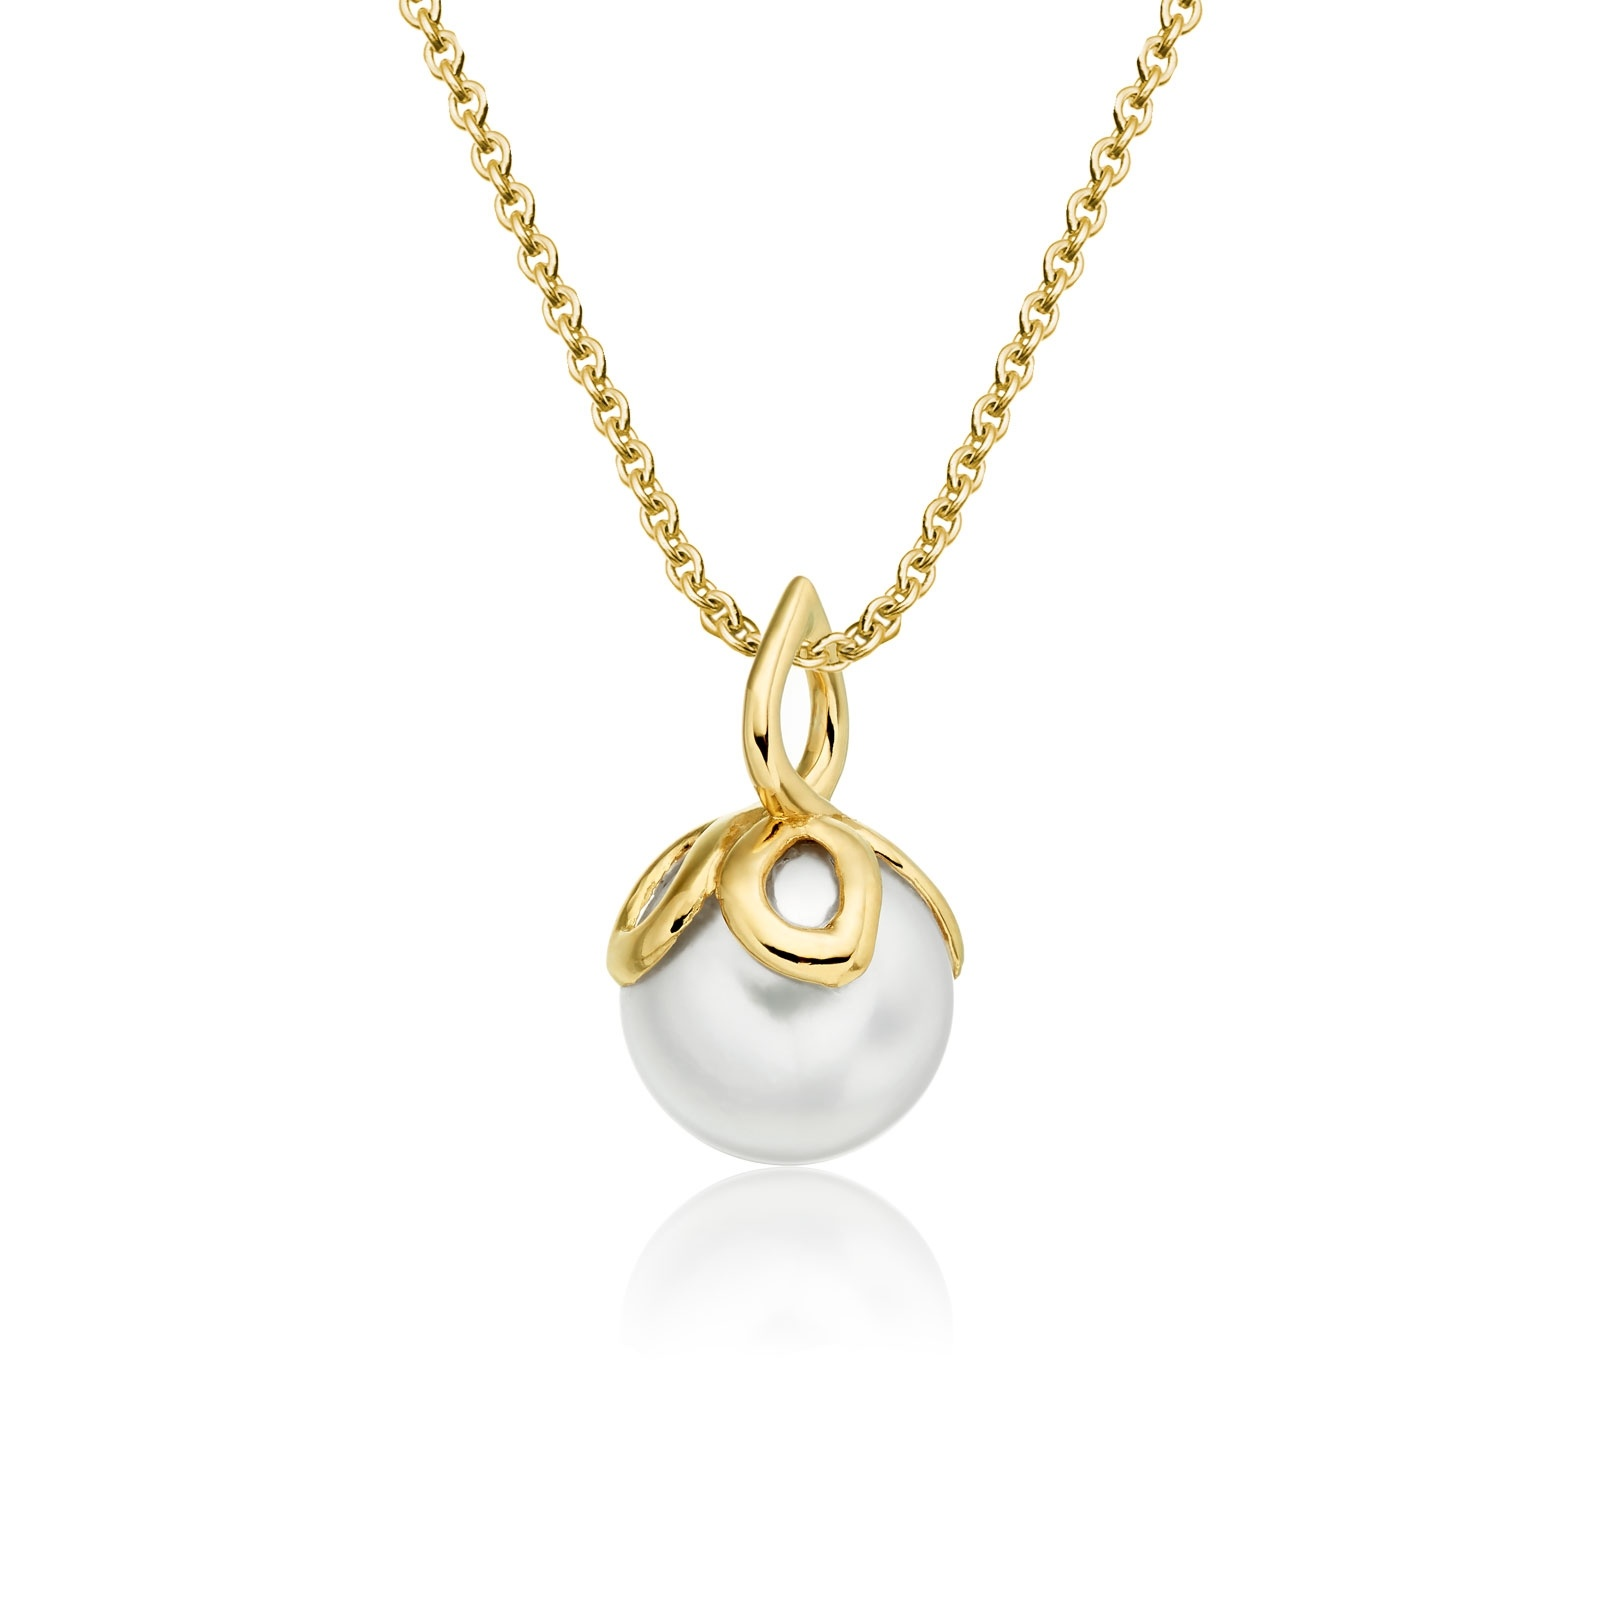 Entwined Pearl Pendant with Yellow Gold Chain-APWRYG0798-1